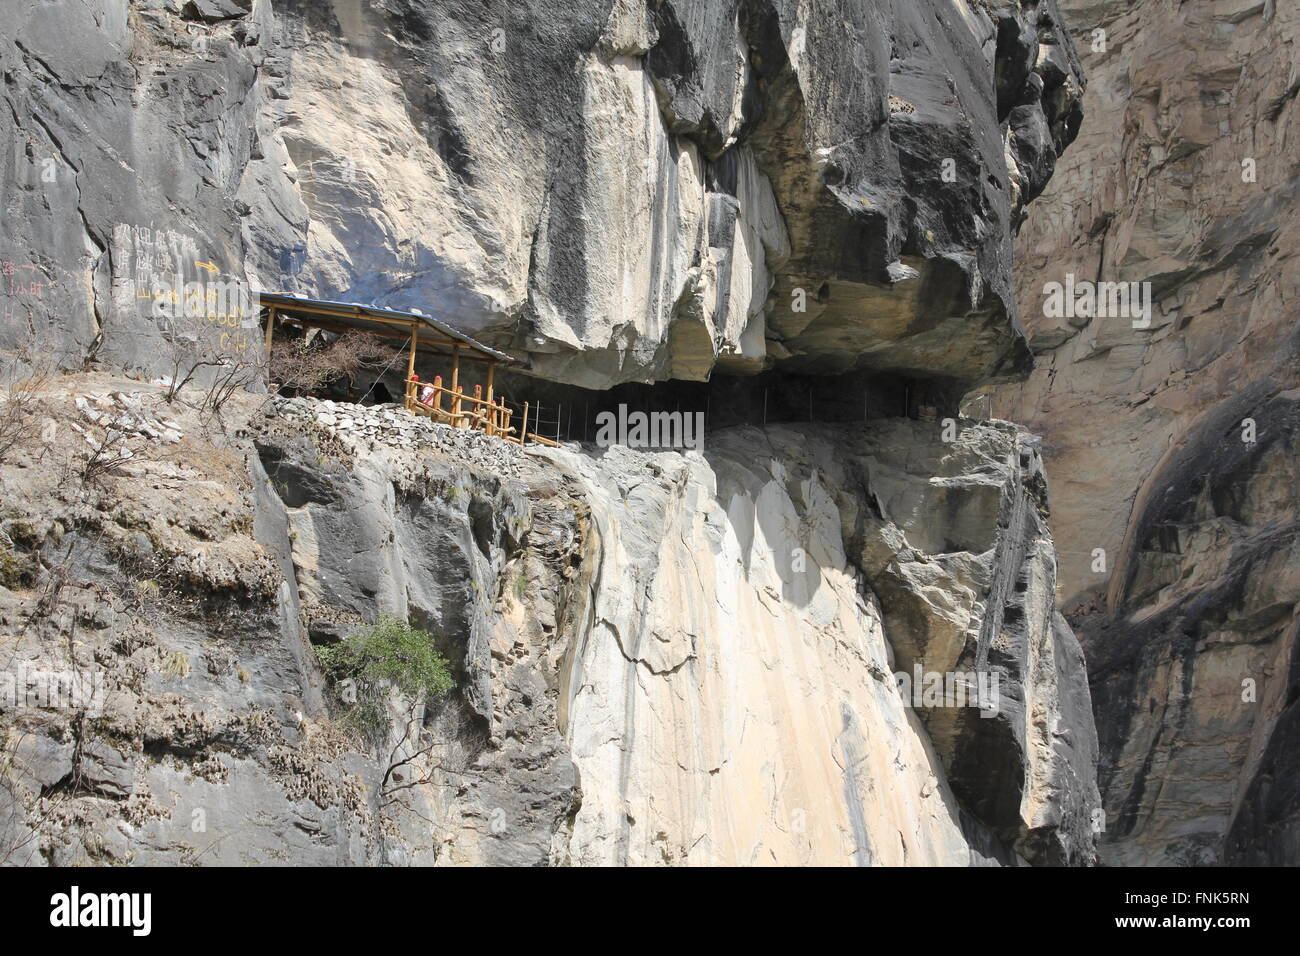 Tiger Leaping Gorge, China. - Stock Image